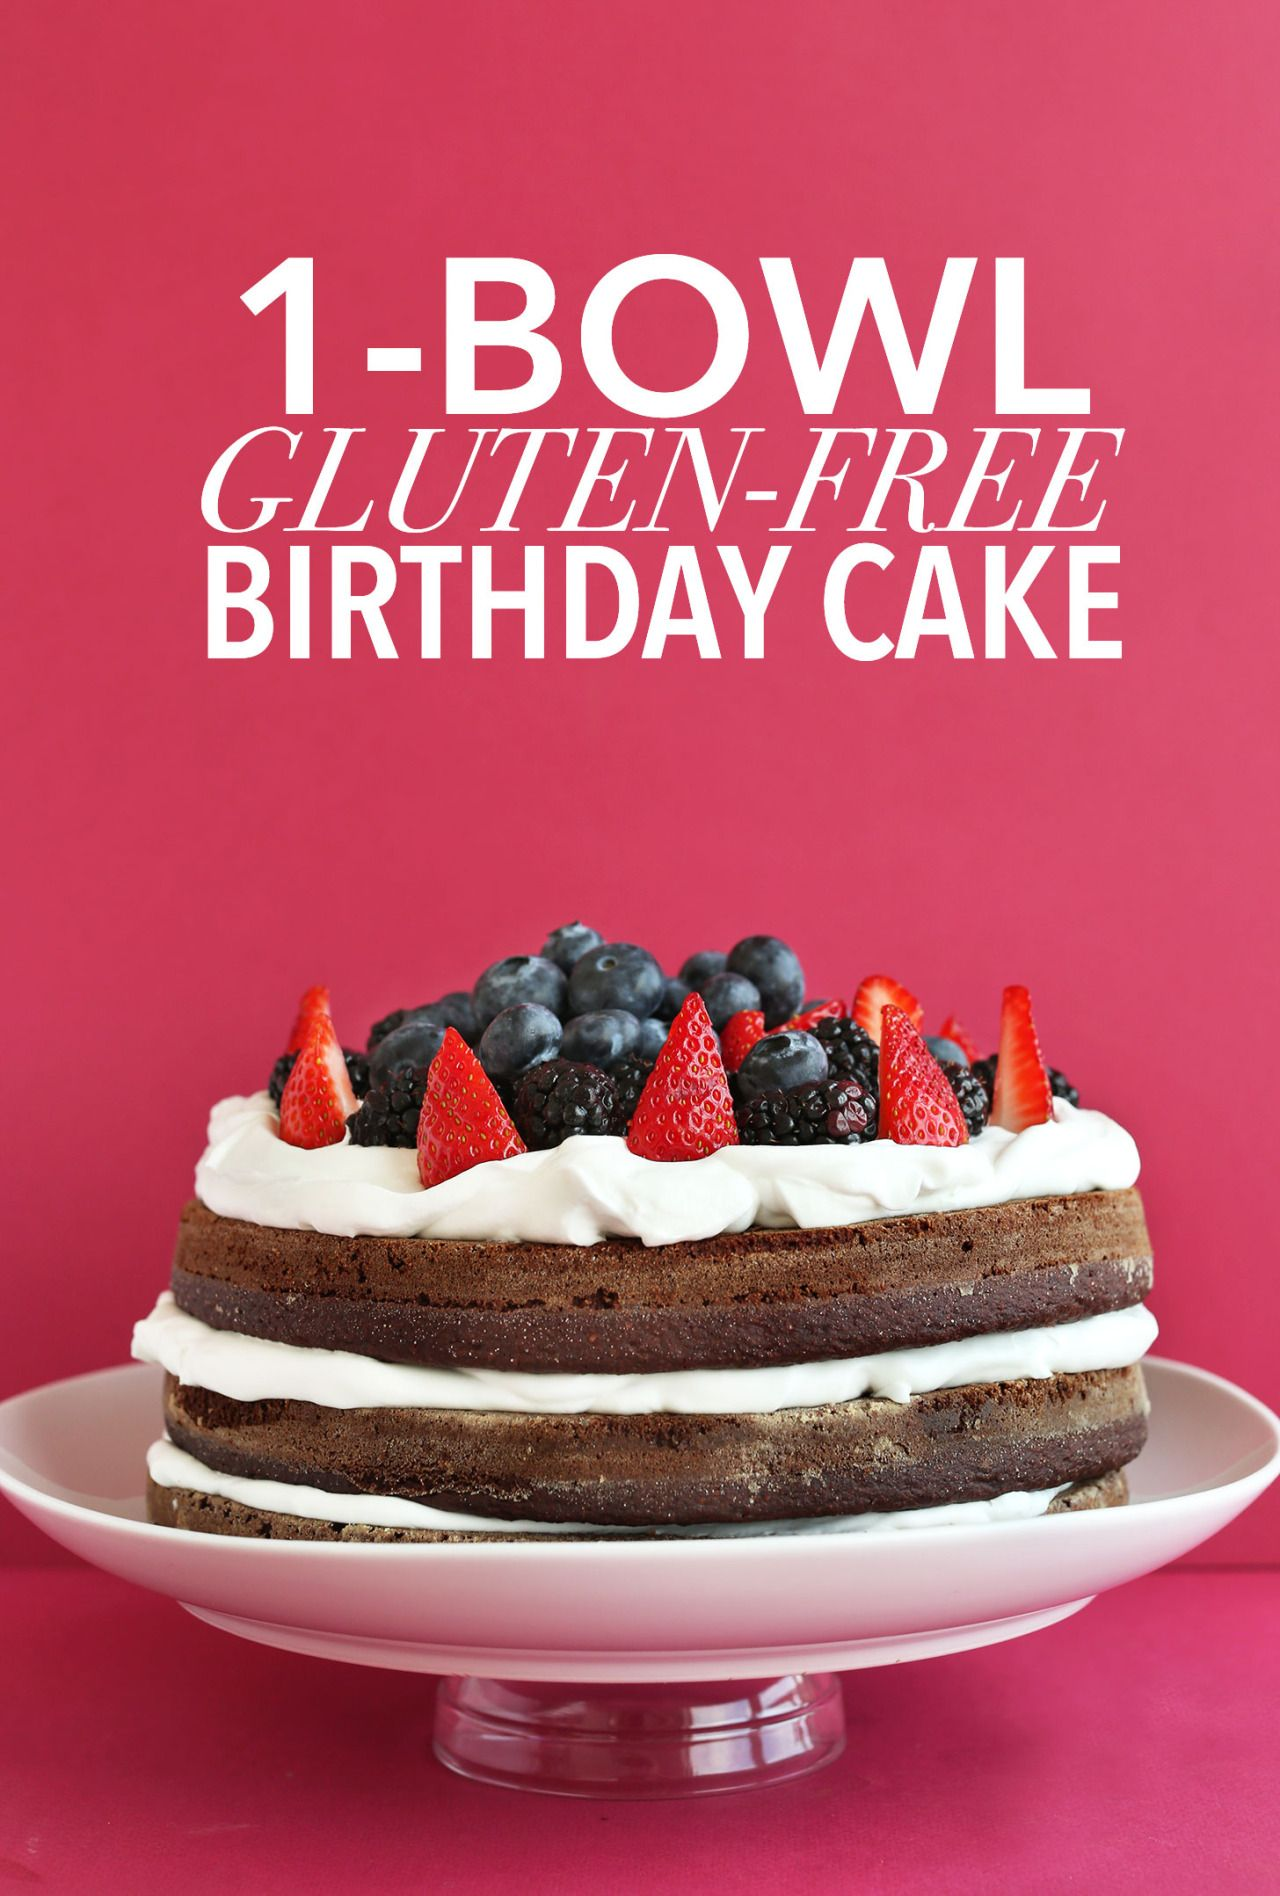 Via Gluten Free Birthday Cake